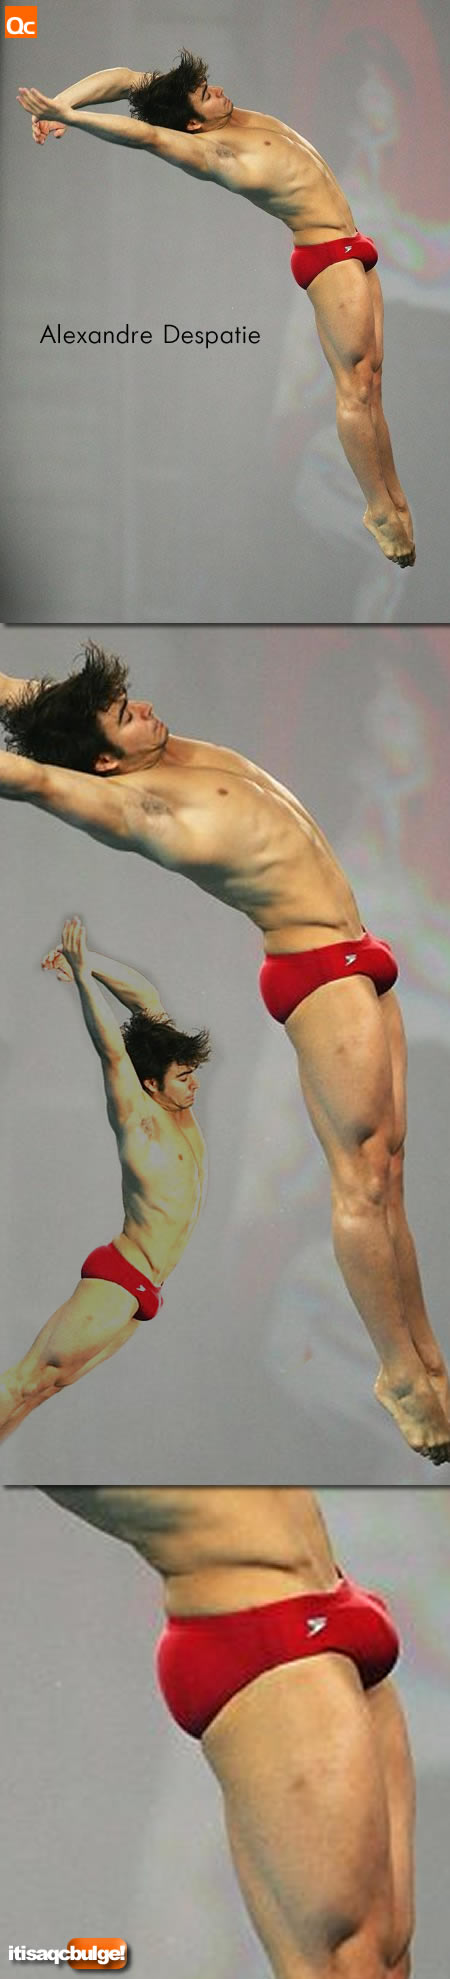 Alexandre Despatie's Bulge